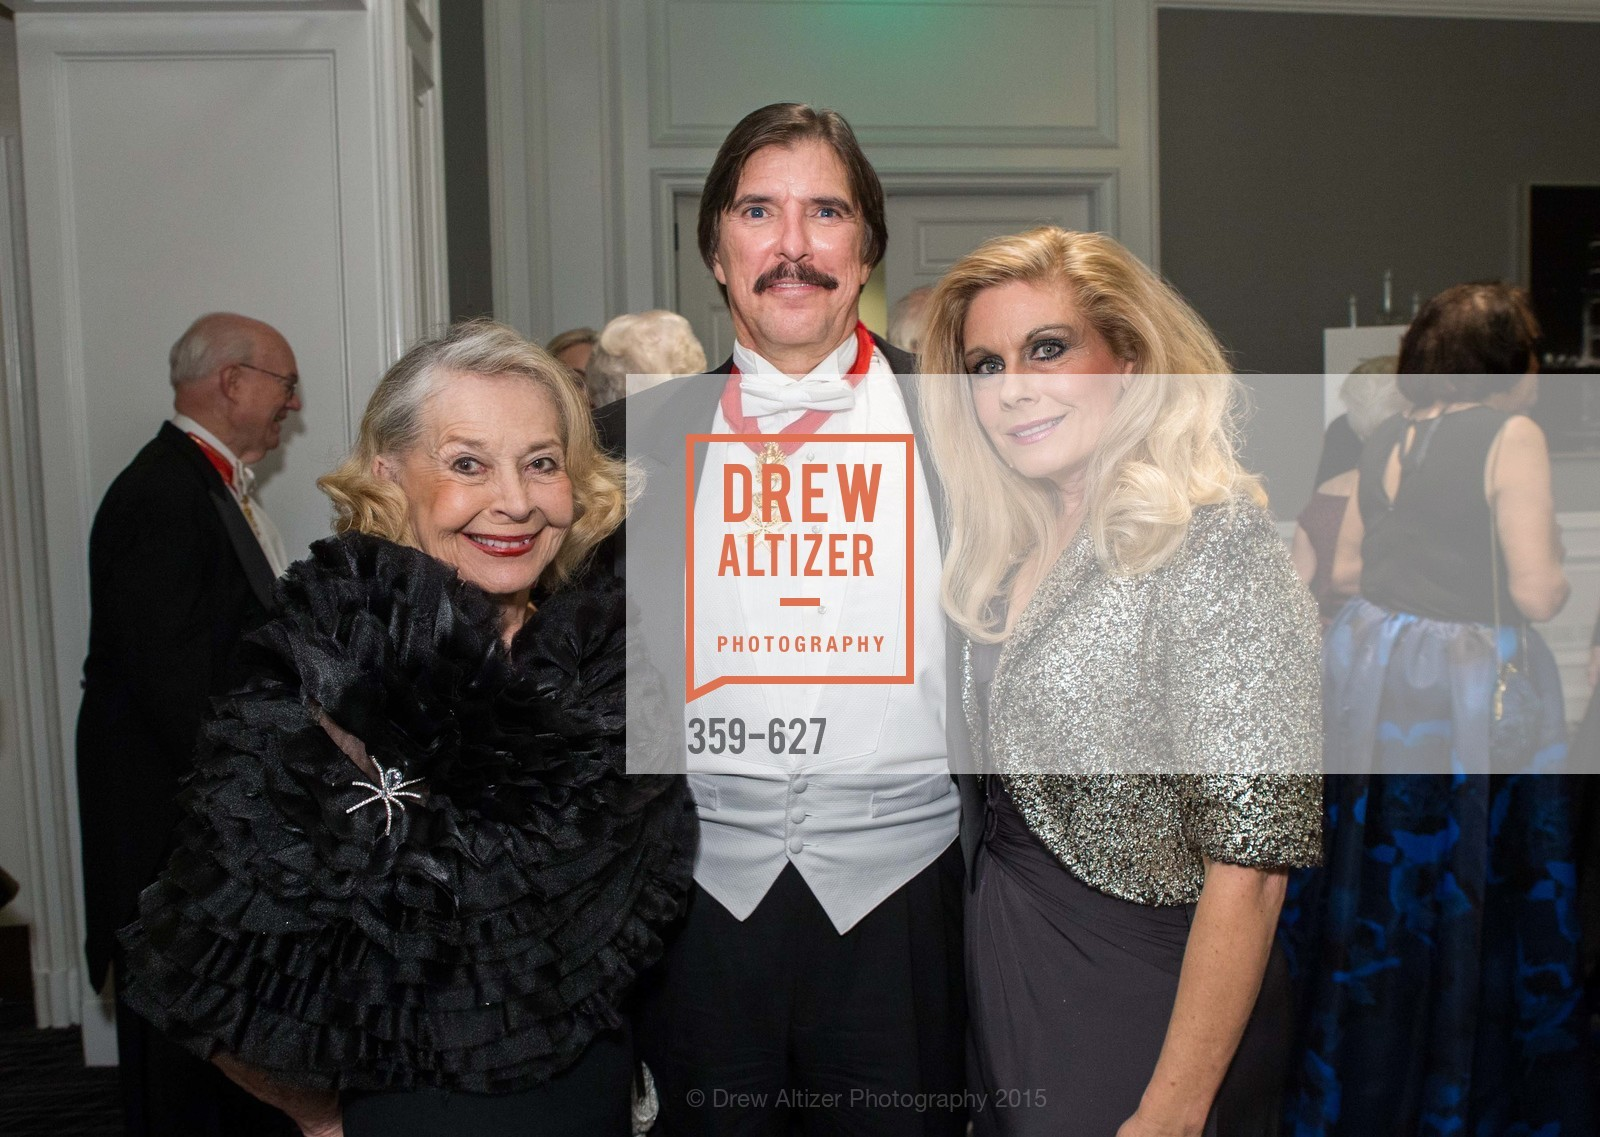 Irene Bechtel, John Rosin, Jacqueline Jacoby, Sovereign Order Of St John of Jerusalem Knights Hospitaller Gala, Ritz Carlton San Francisco, December 5th, 2015,Drew Altizer, Drew Altizer Photography, full-service agency, private events, San Francisco photographer, photographer california